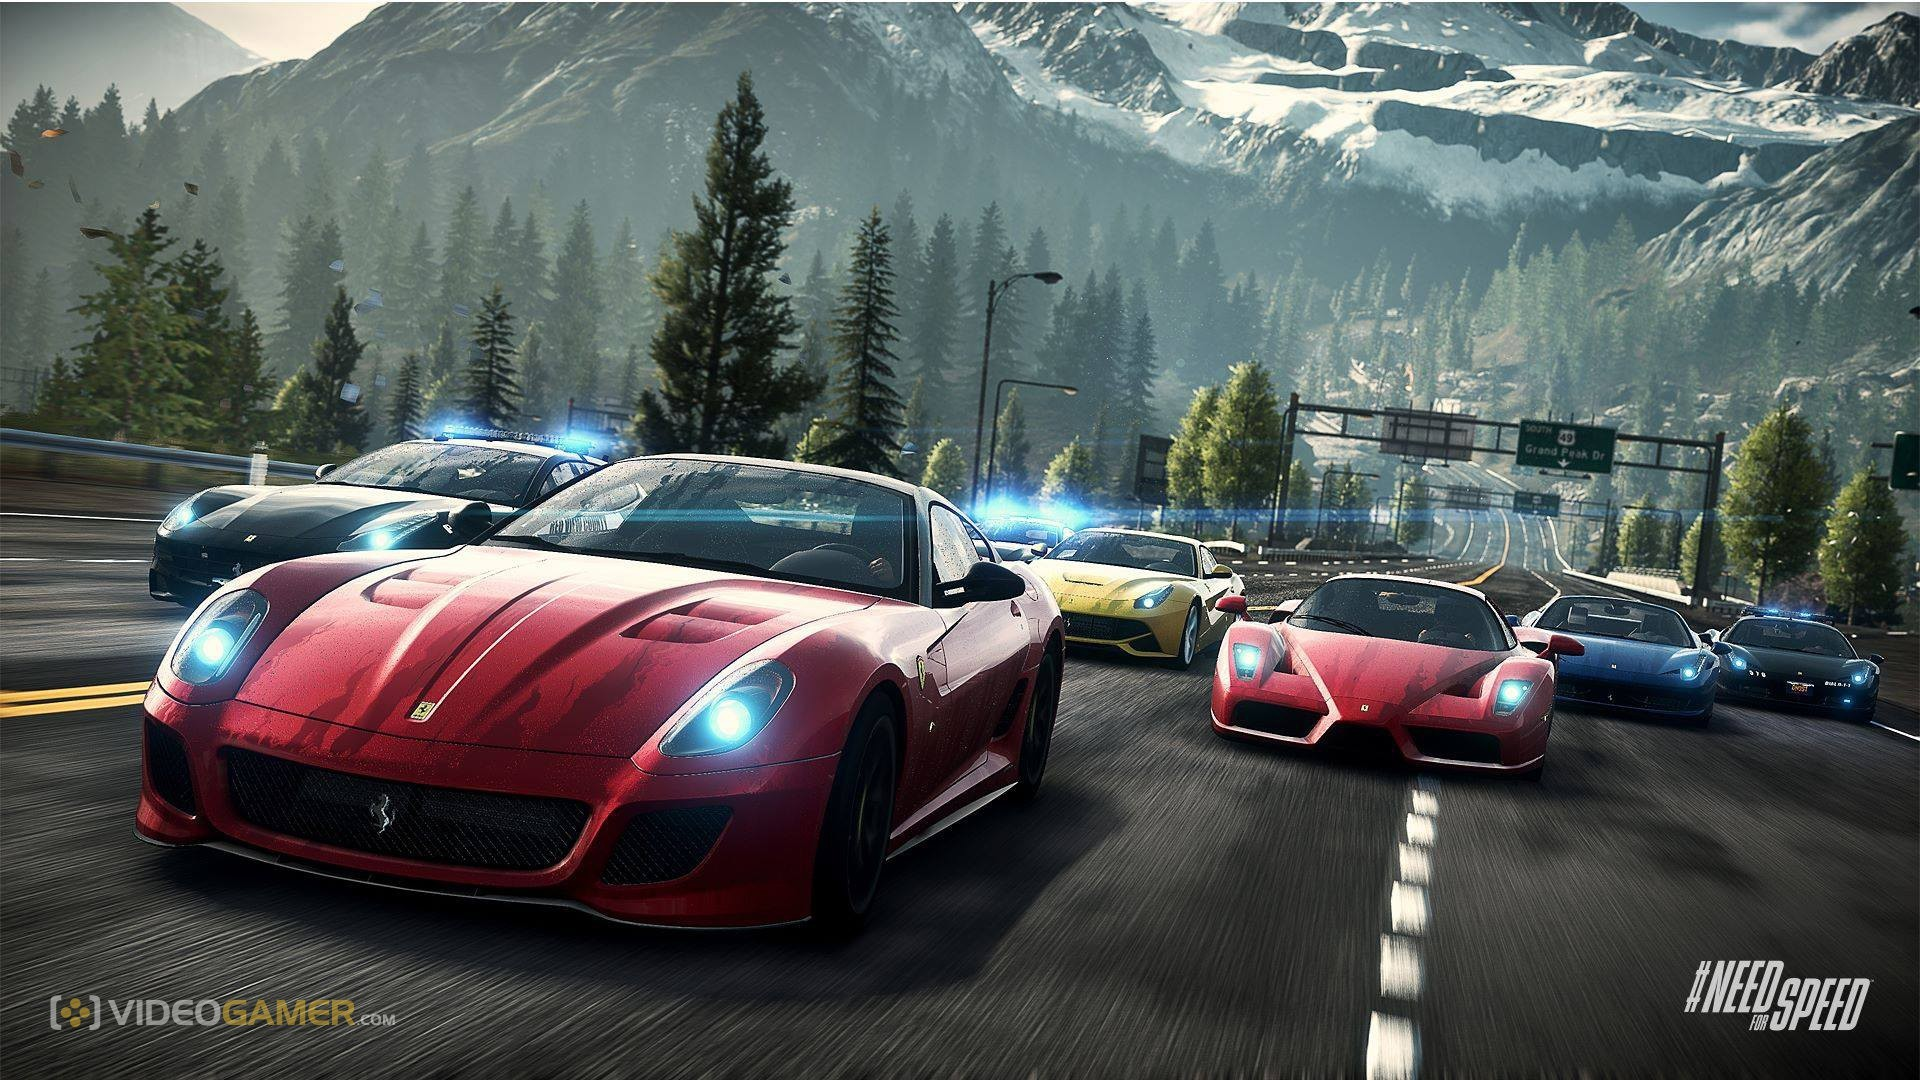 Res: 1920x1080, Need For Speed HD Wallpapers 10 - 1920 X 1080